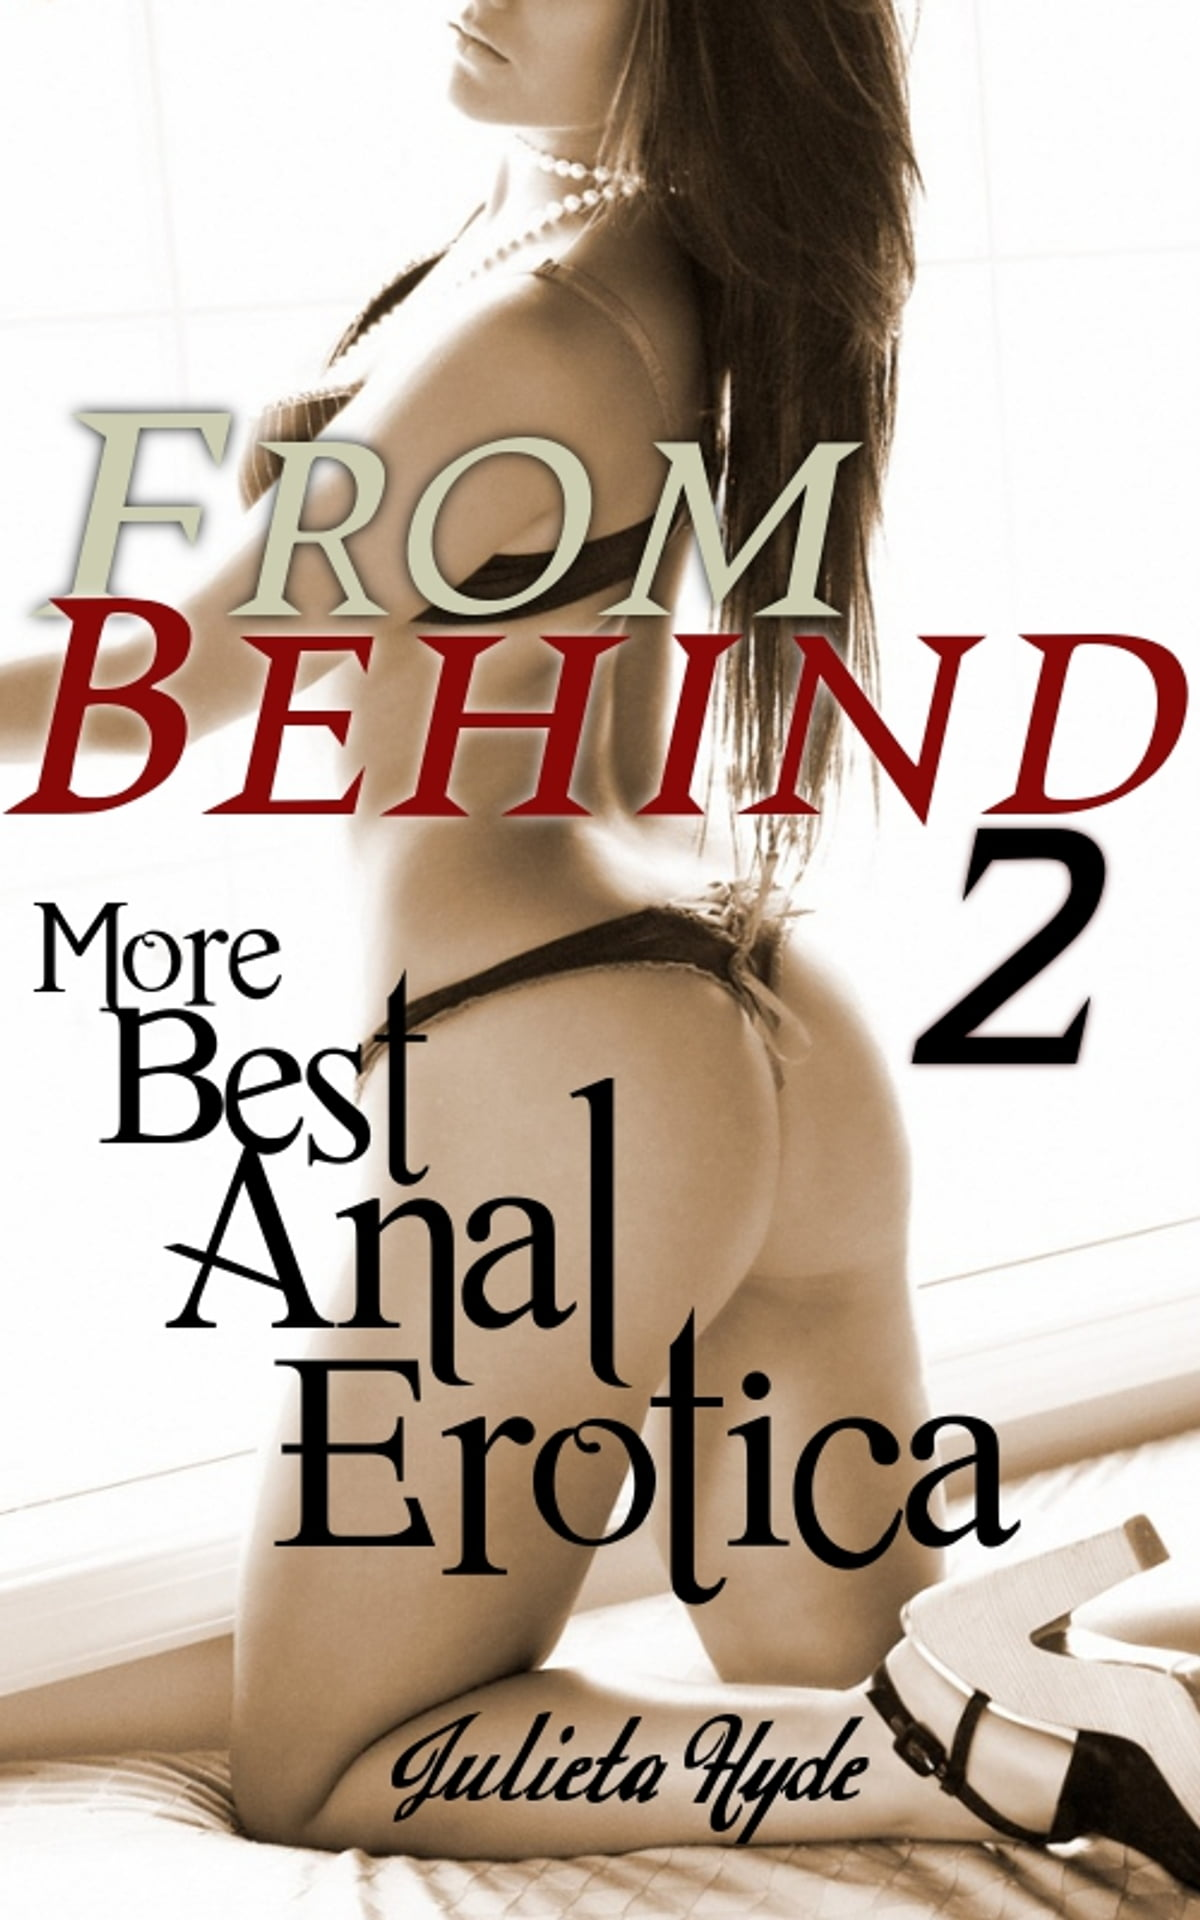 Anal Annie And The Backdoor Housewives from behind 2: more best anal erotica ebookjulieta hyde - rakuten kobo